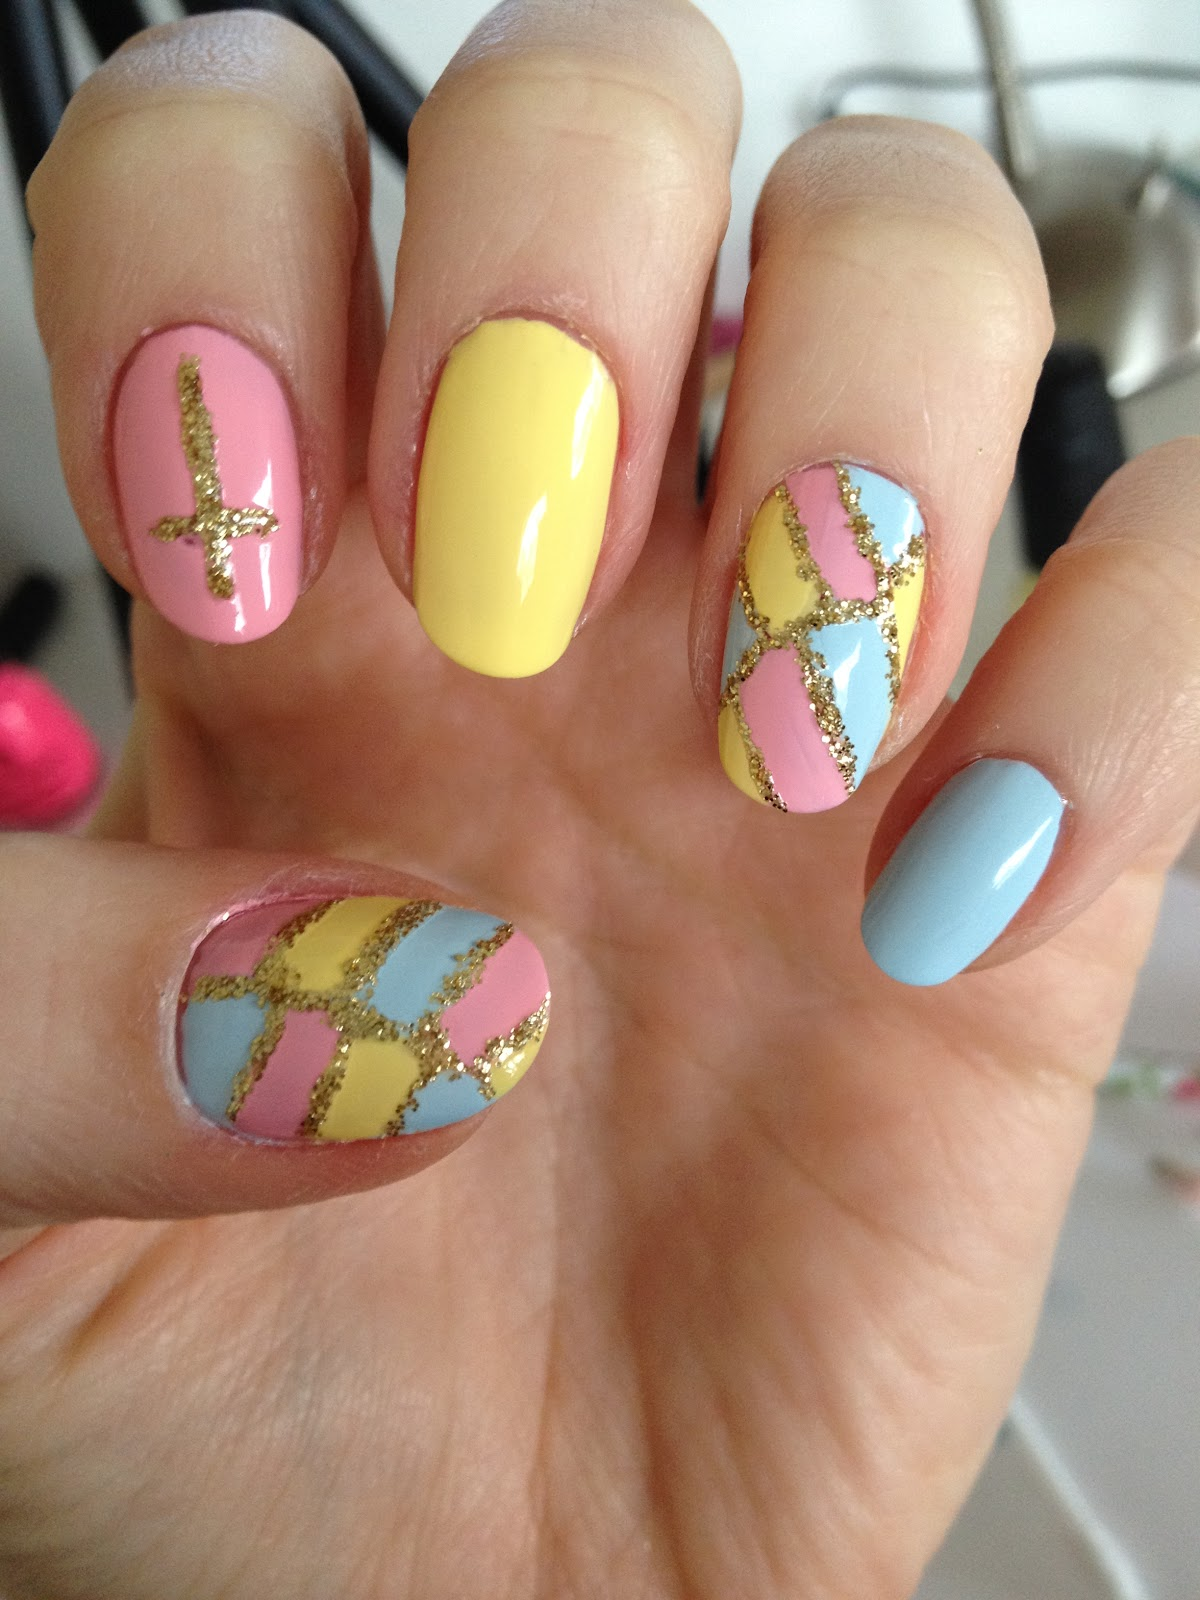 PlasmaSpeedo: Easter Nails?